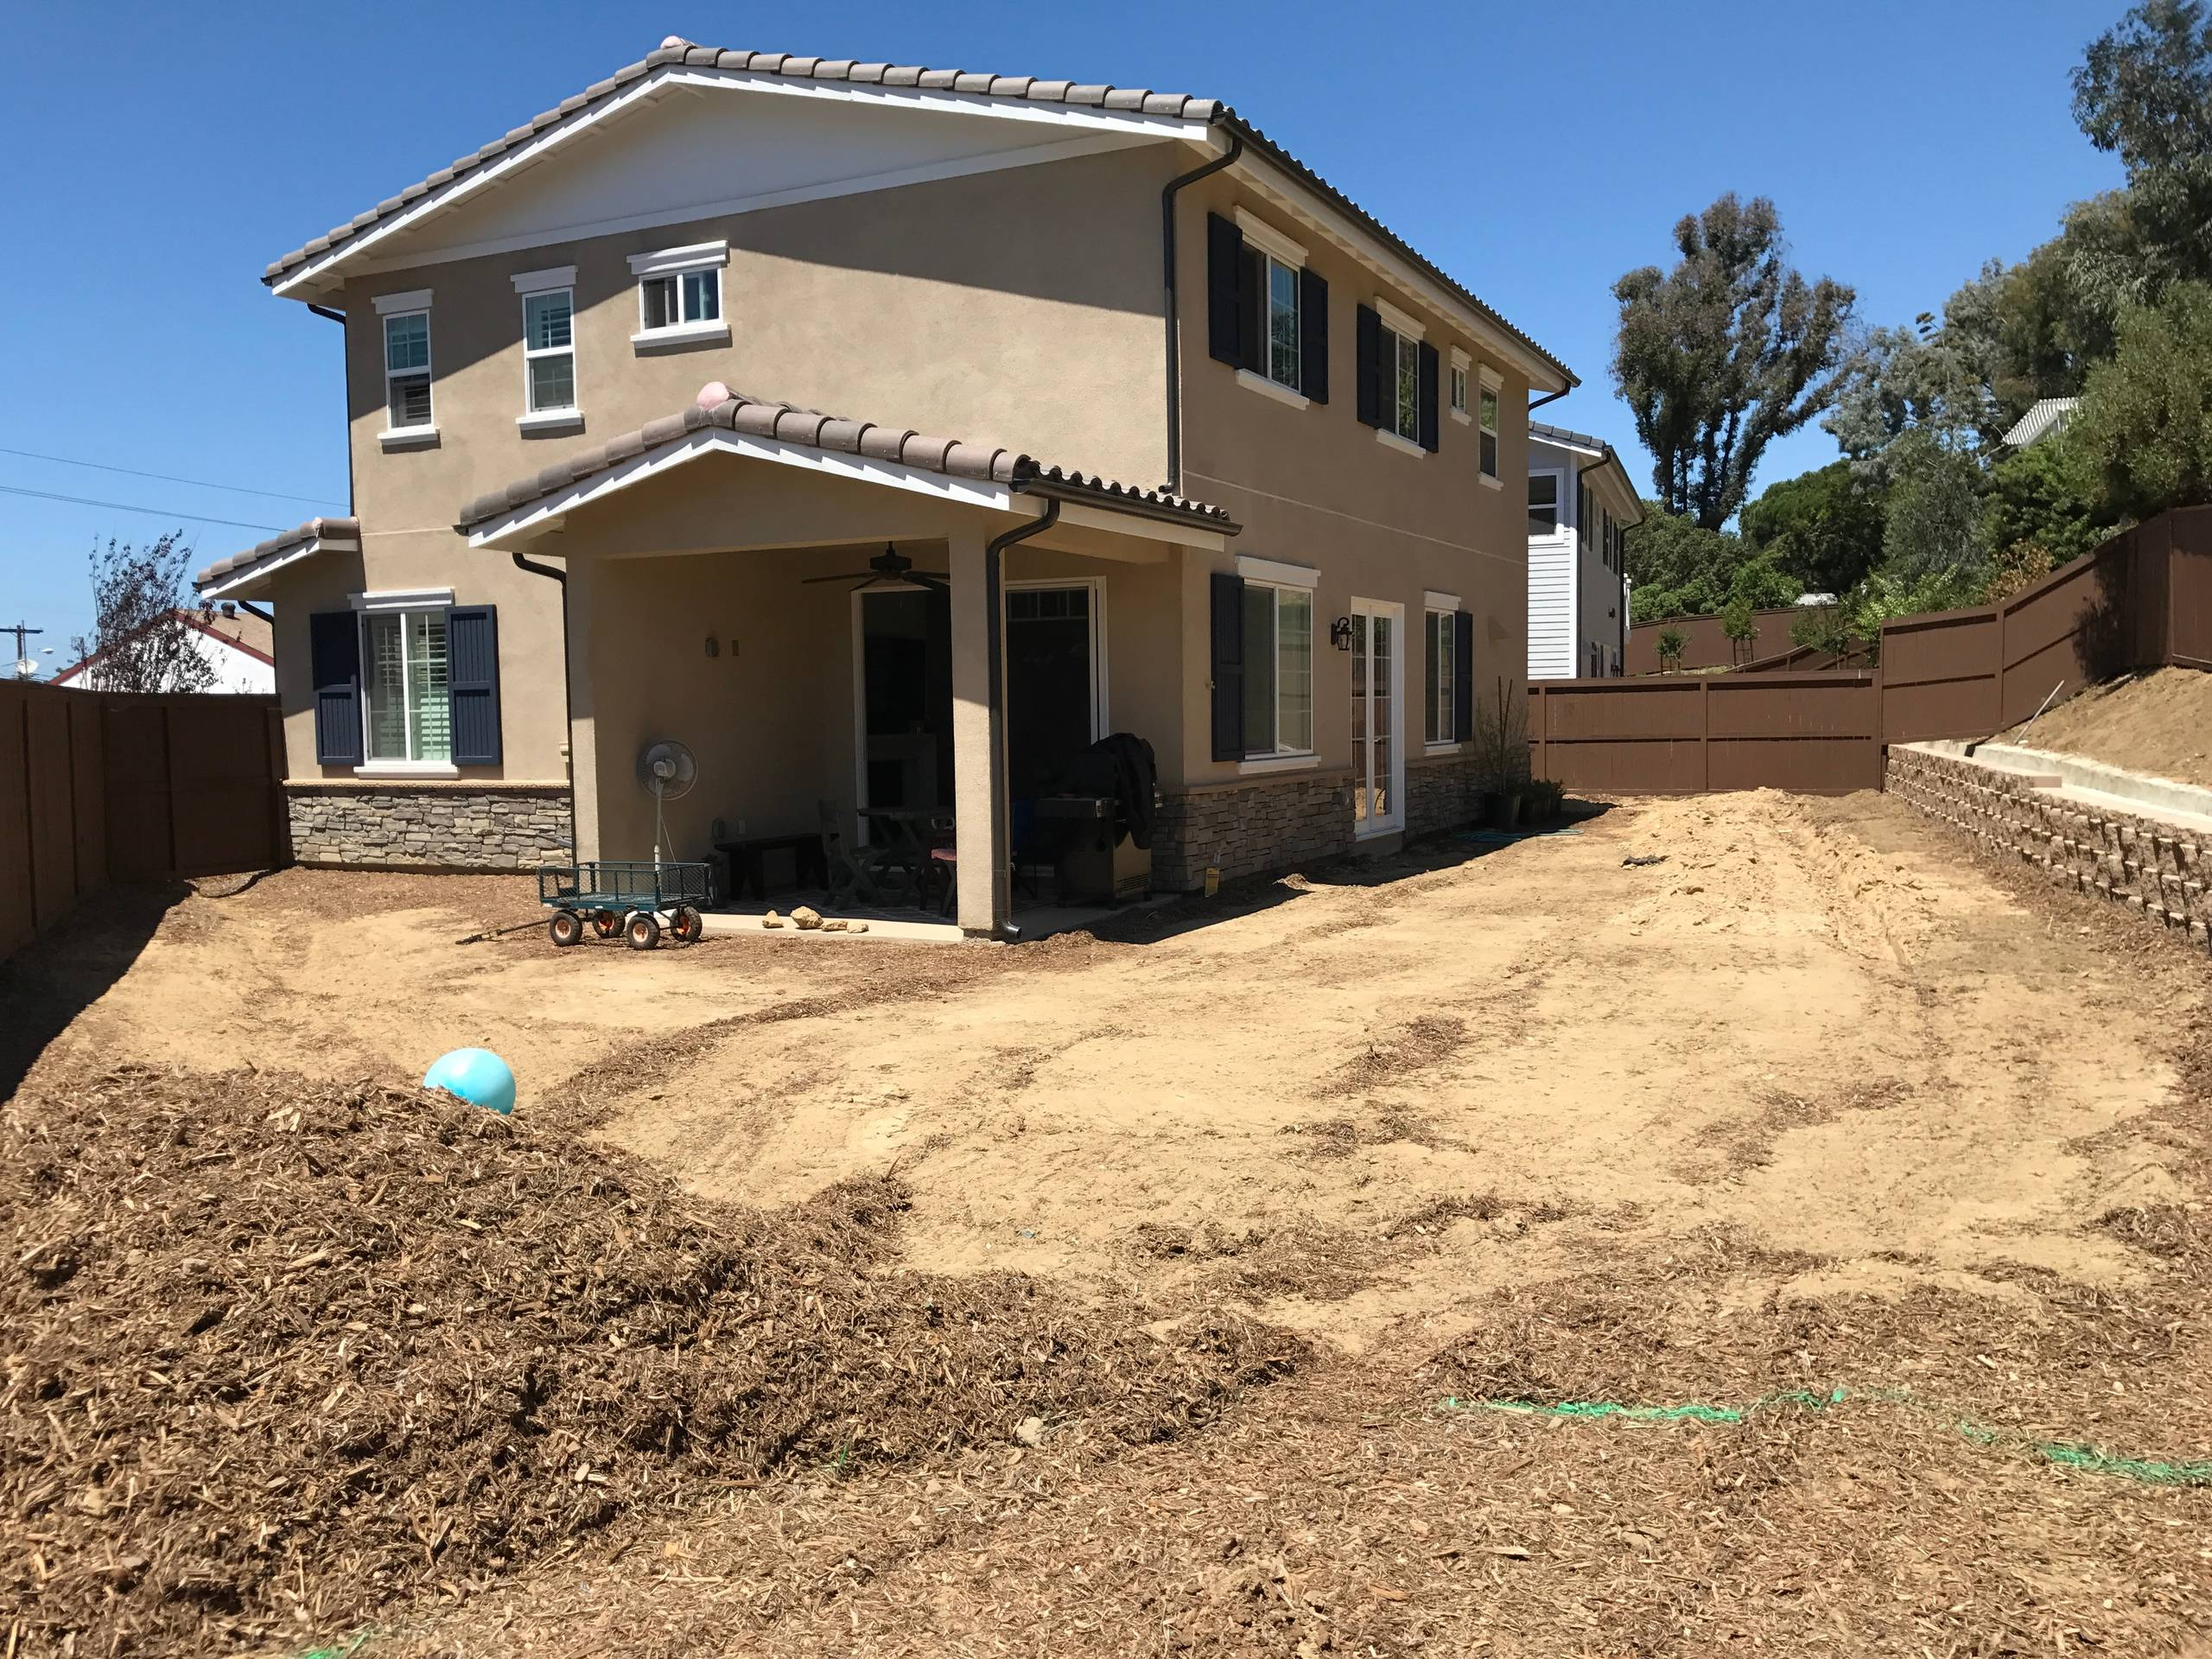 Prepping the Soil for Lawn and Plants